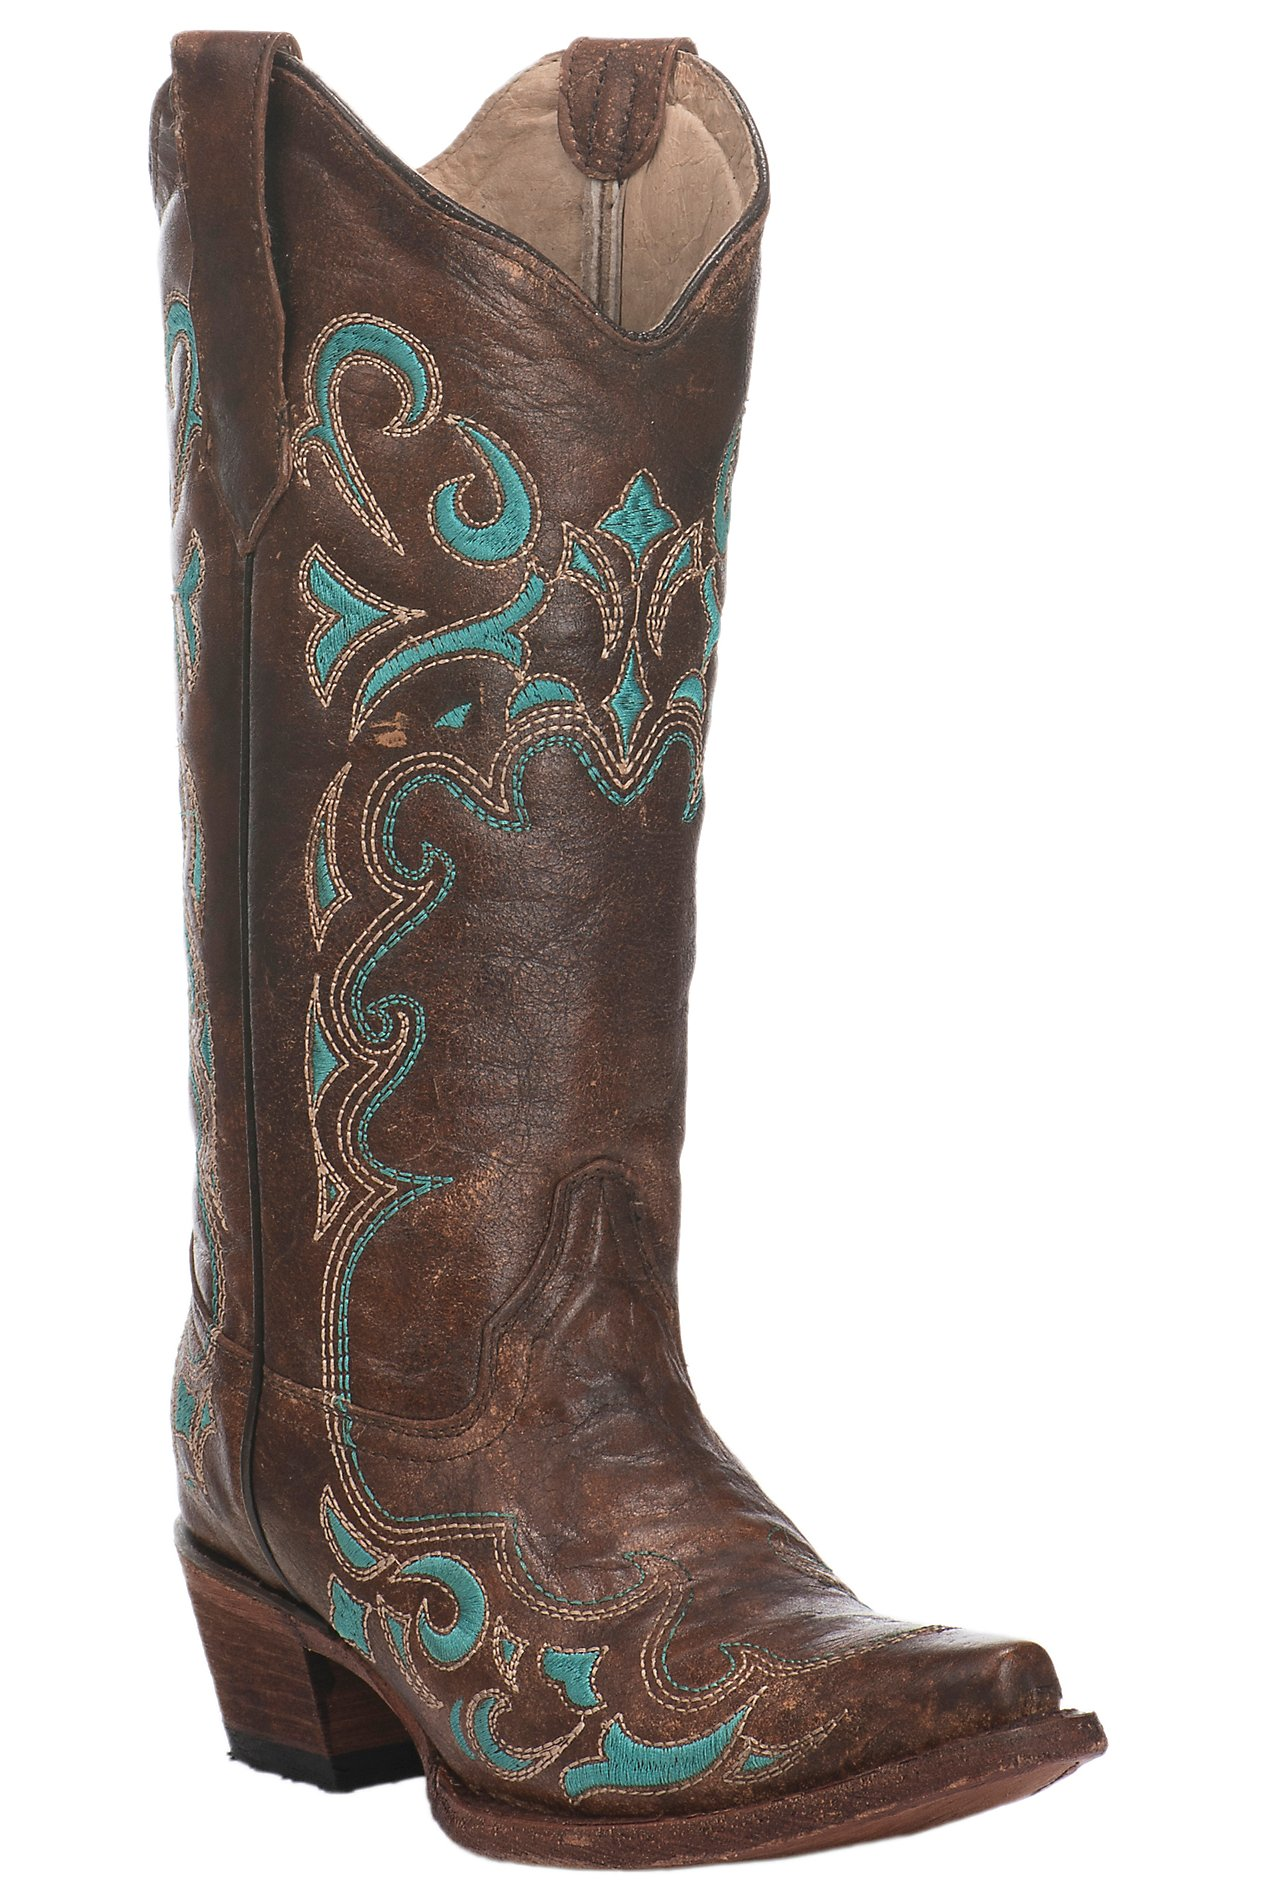 Shop Corral Boots | Free Shipping on Boots | Cavender's